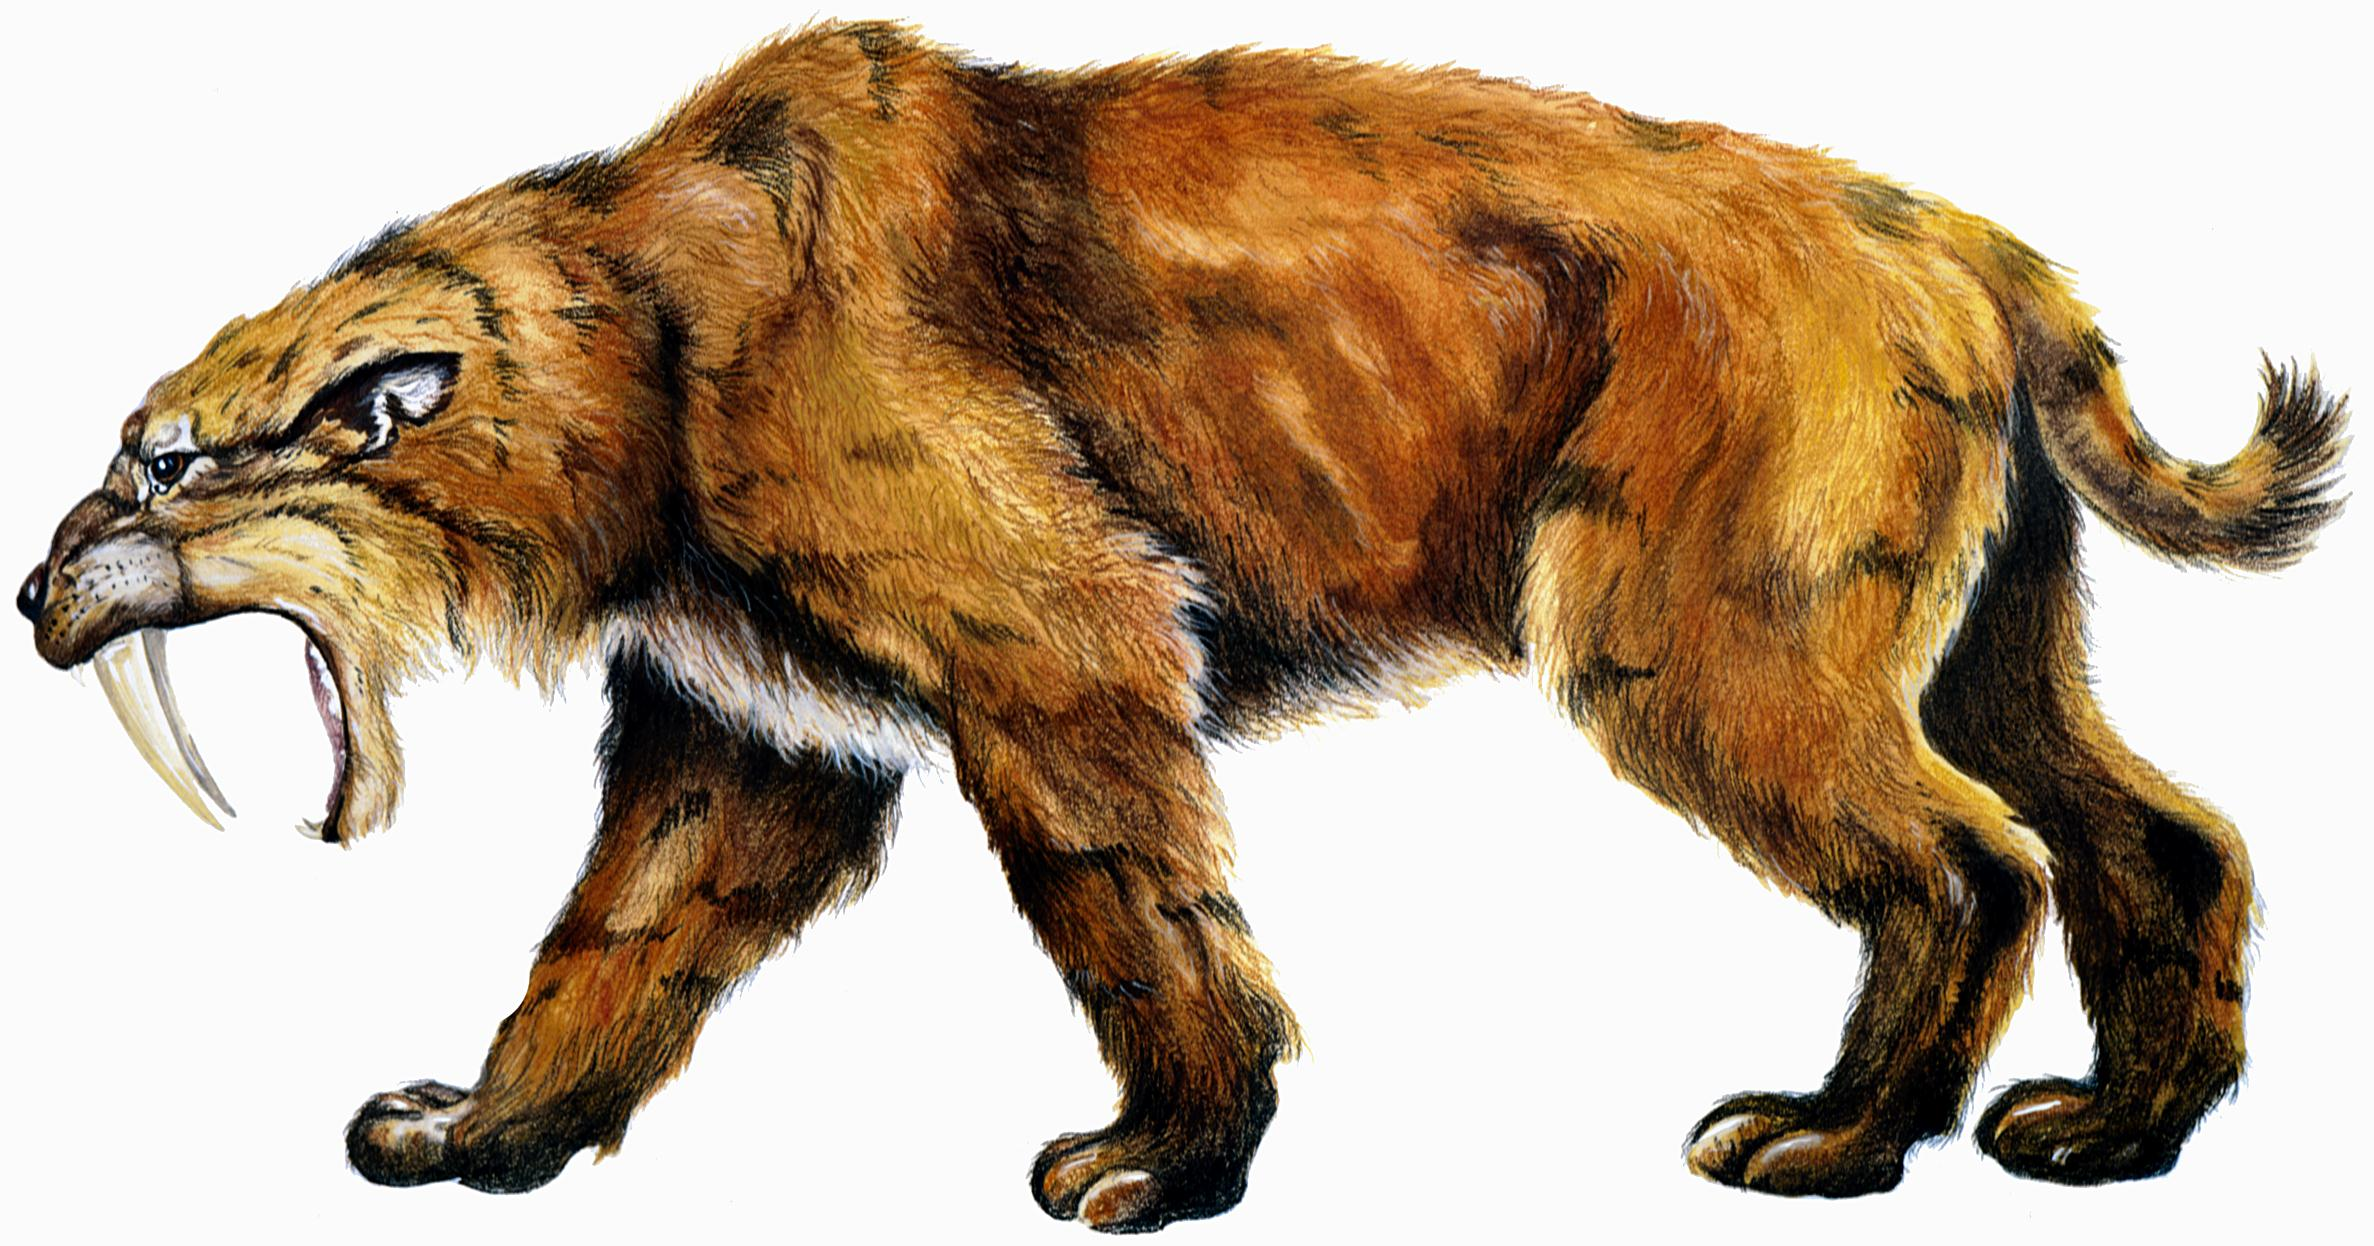 Saber-toothed cat (Smilodon fatalis). Image was generously provided by the Indiana State Museum.